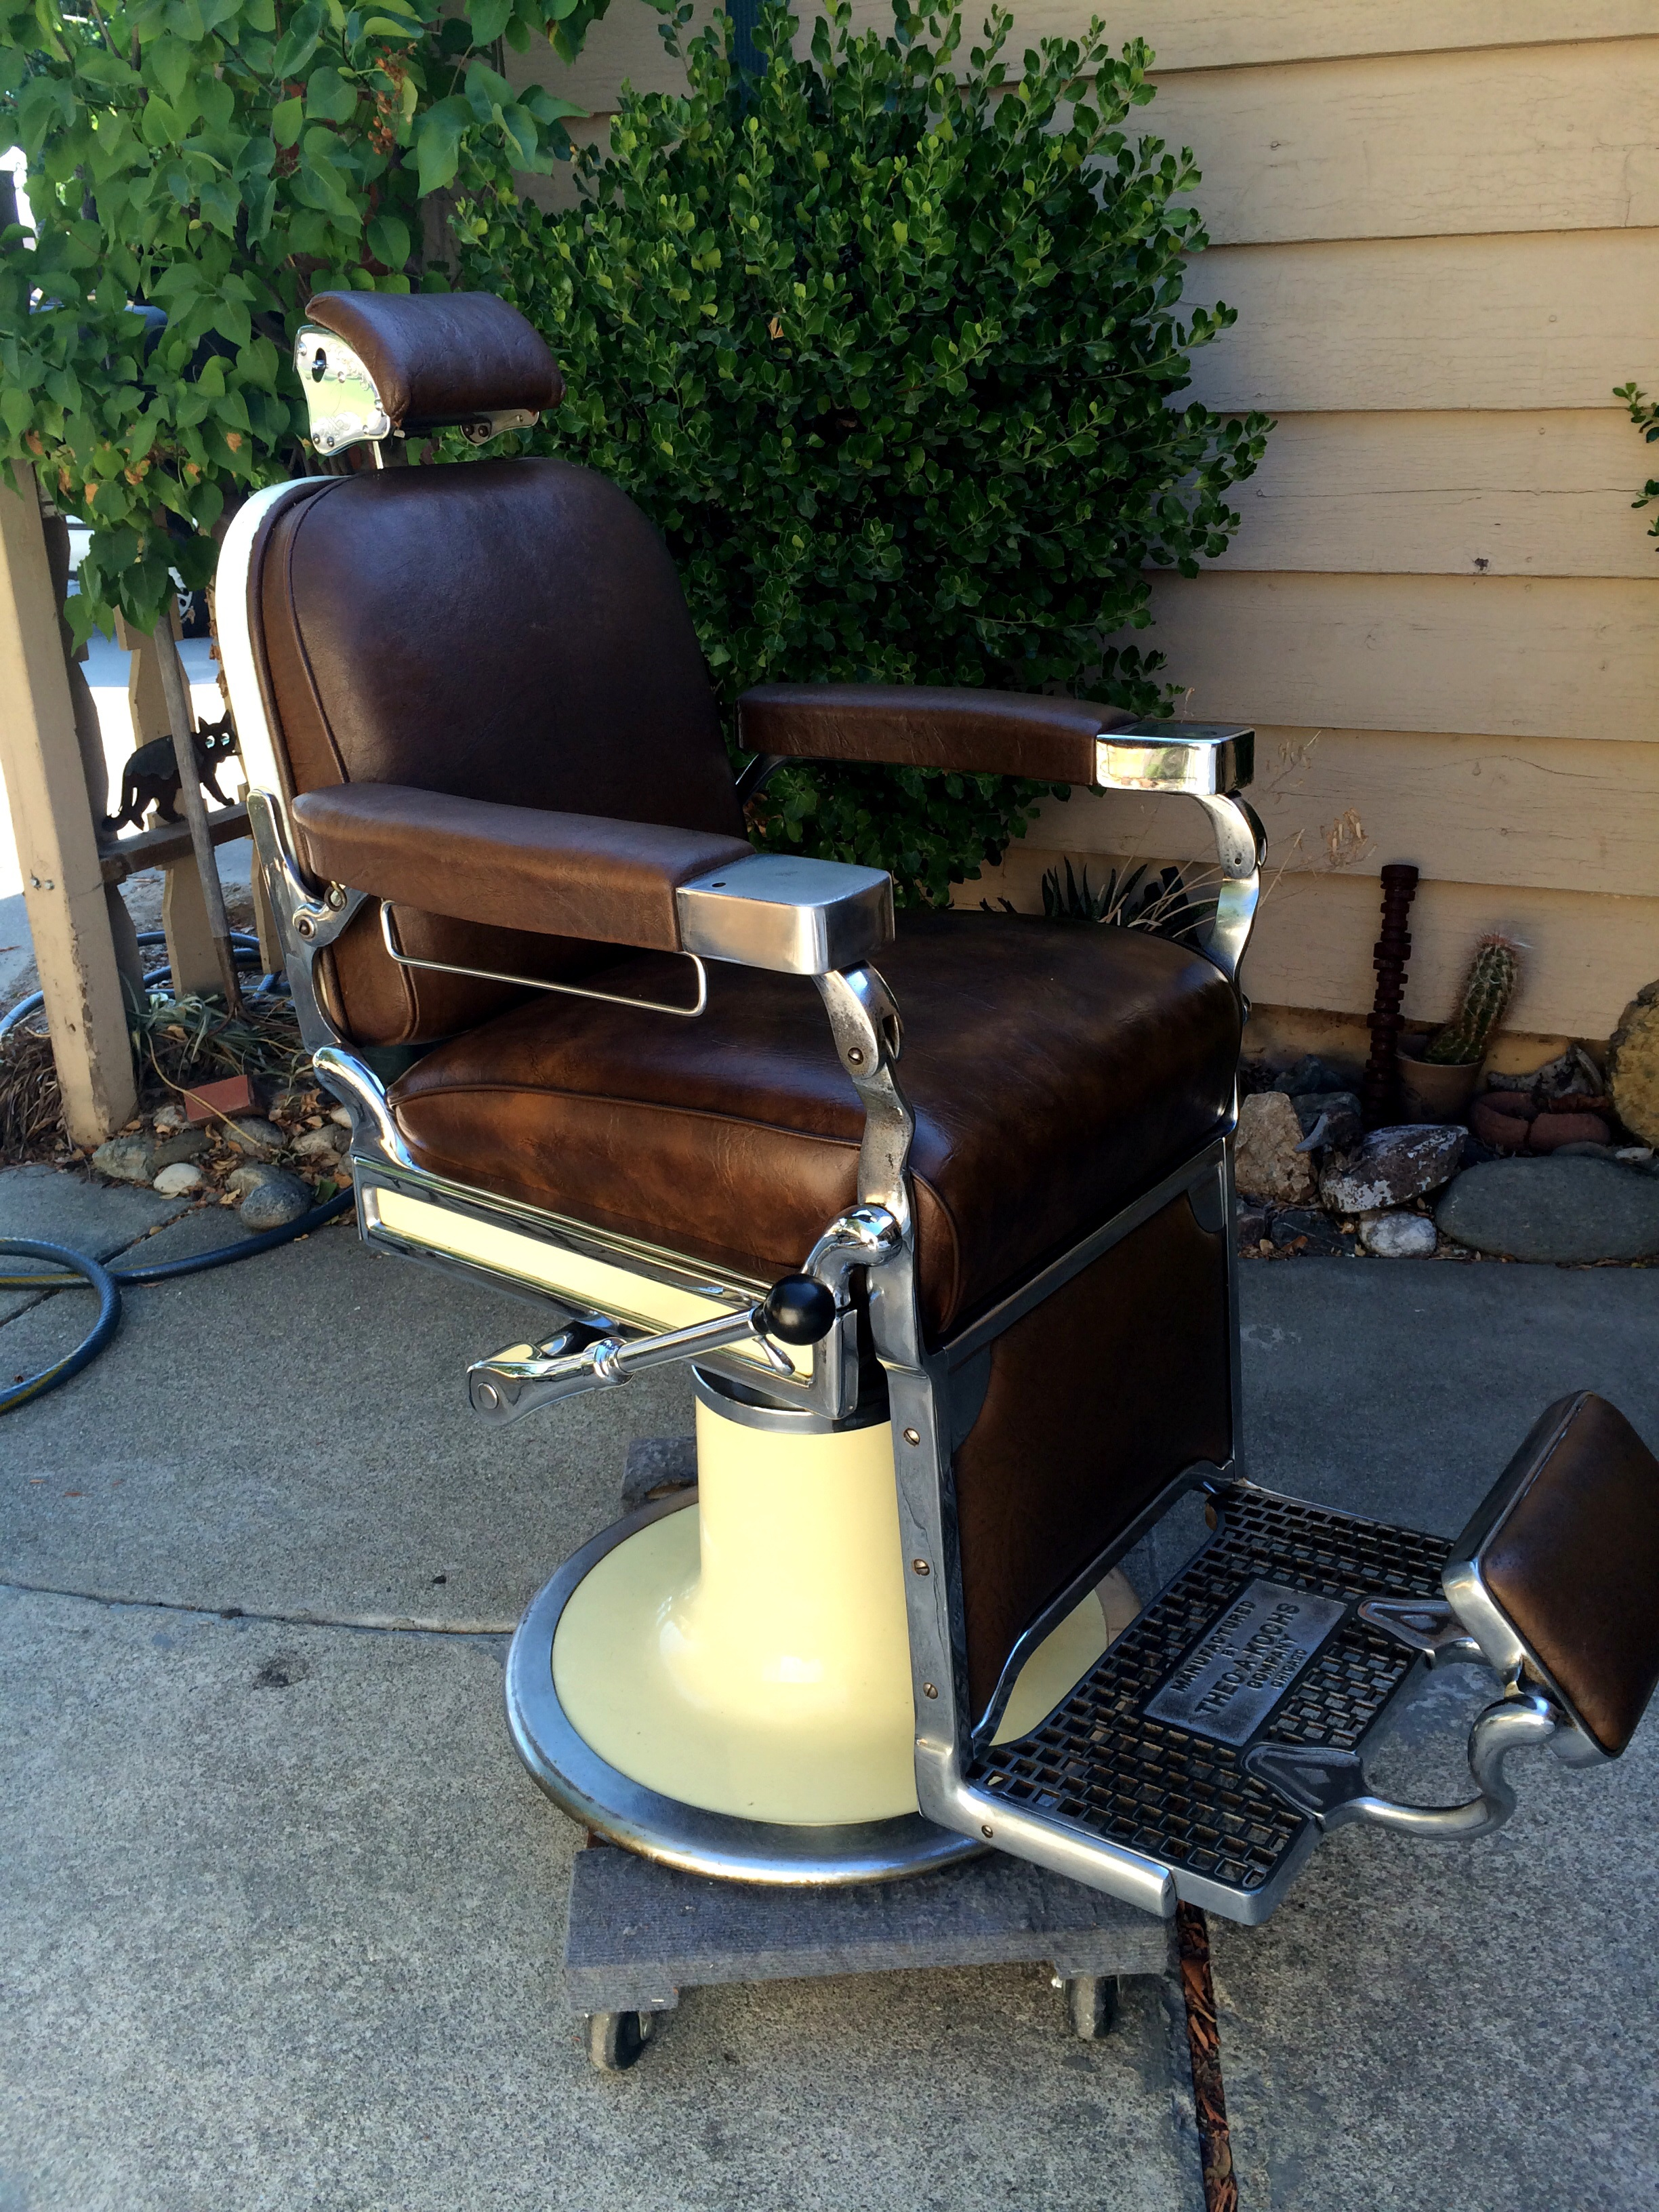 Antique Barber Chair For Sale Theo A Koch Antique Barber Chair Antique Appraisal